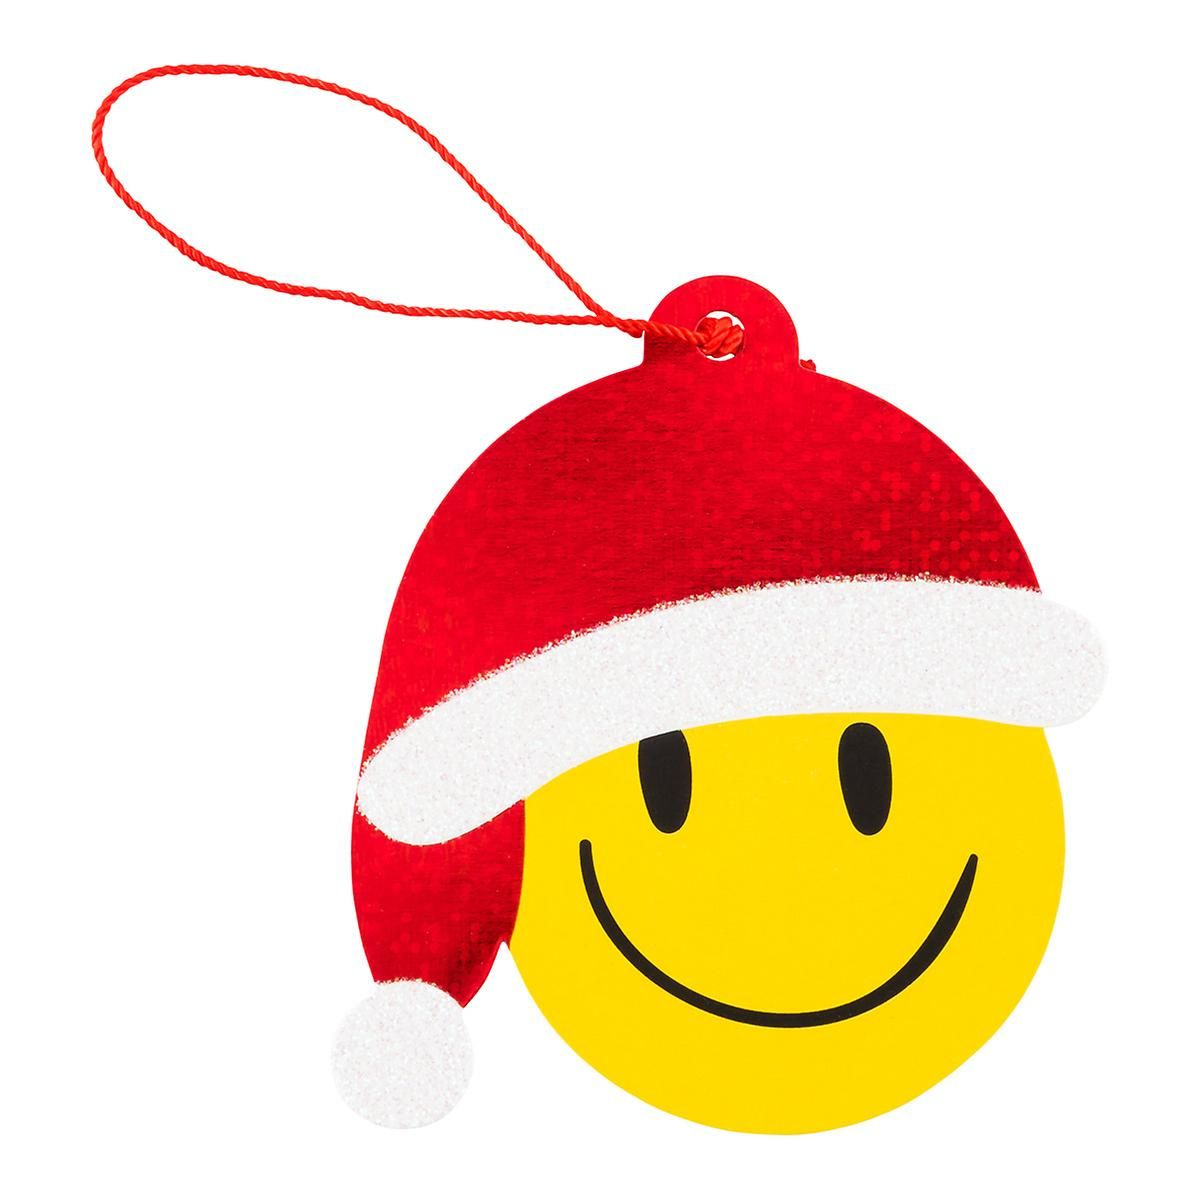 Christmas Emoji Gift Tags Merry Christmas Images Merry Christmas Funny Emoji Gifts